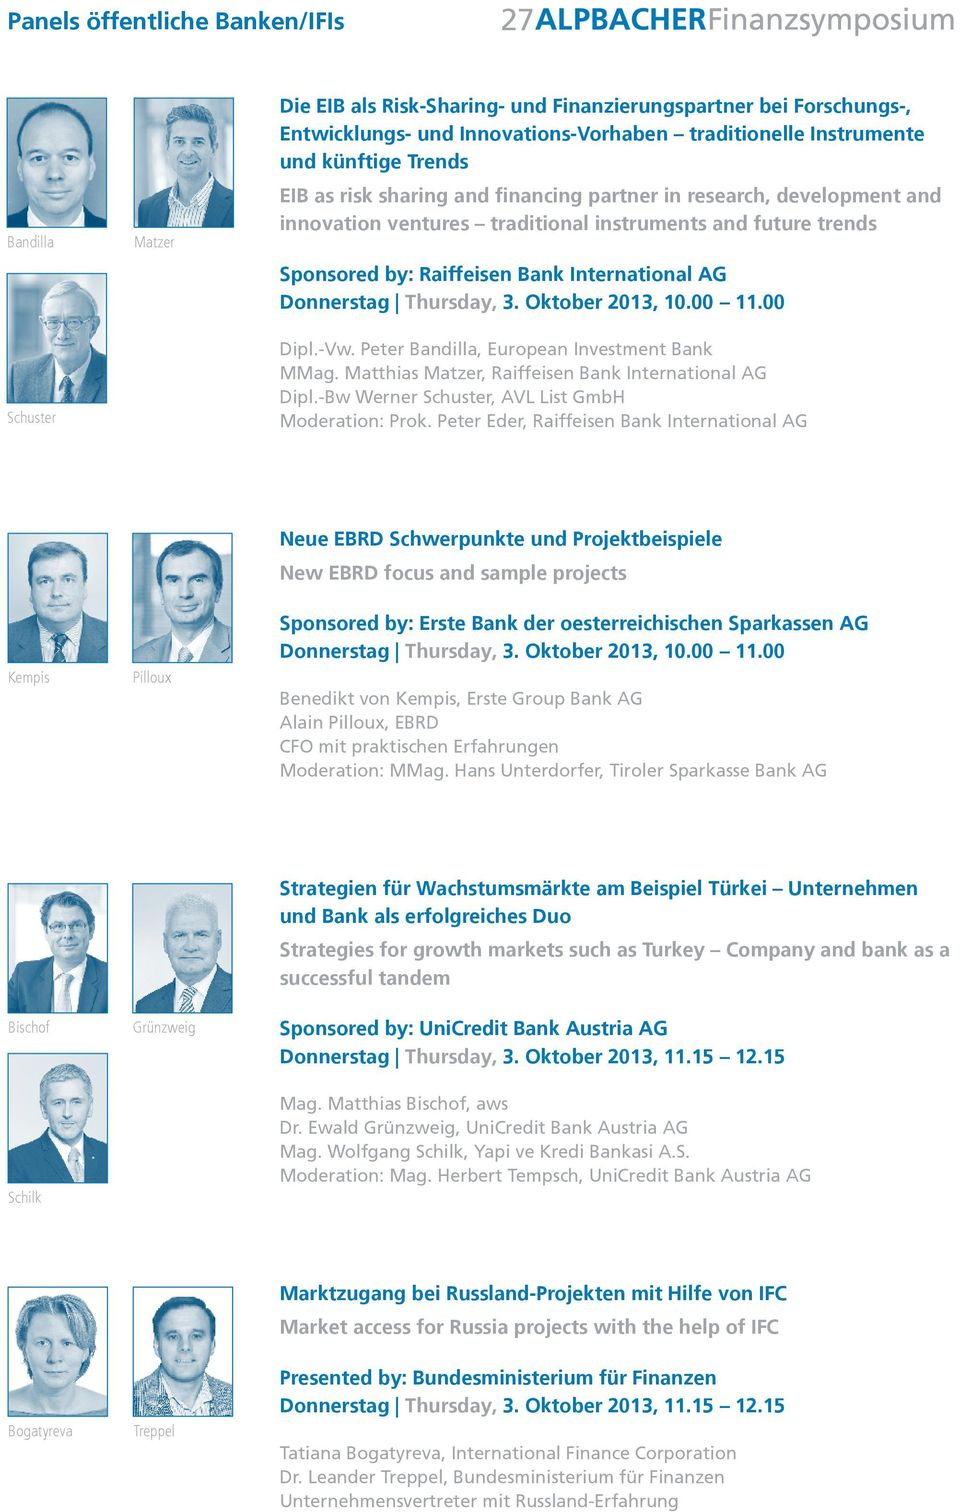 Donnerstag Thursday, 3. Oktober 2013, 10.00 11.00 Dipl.-Vw. Peter Bandilla, European Investment Bank MMag. Matthias Matzer, Raiffeisen Bank International AG Dipl.